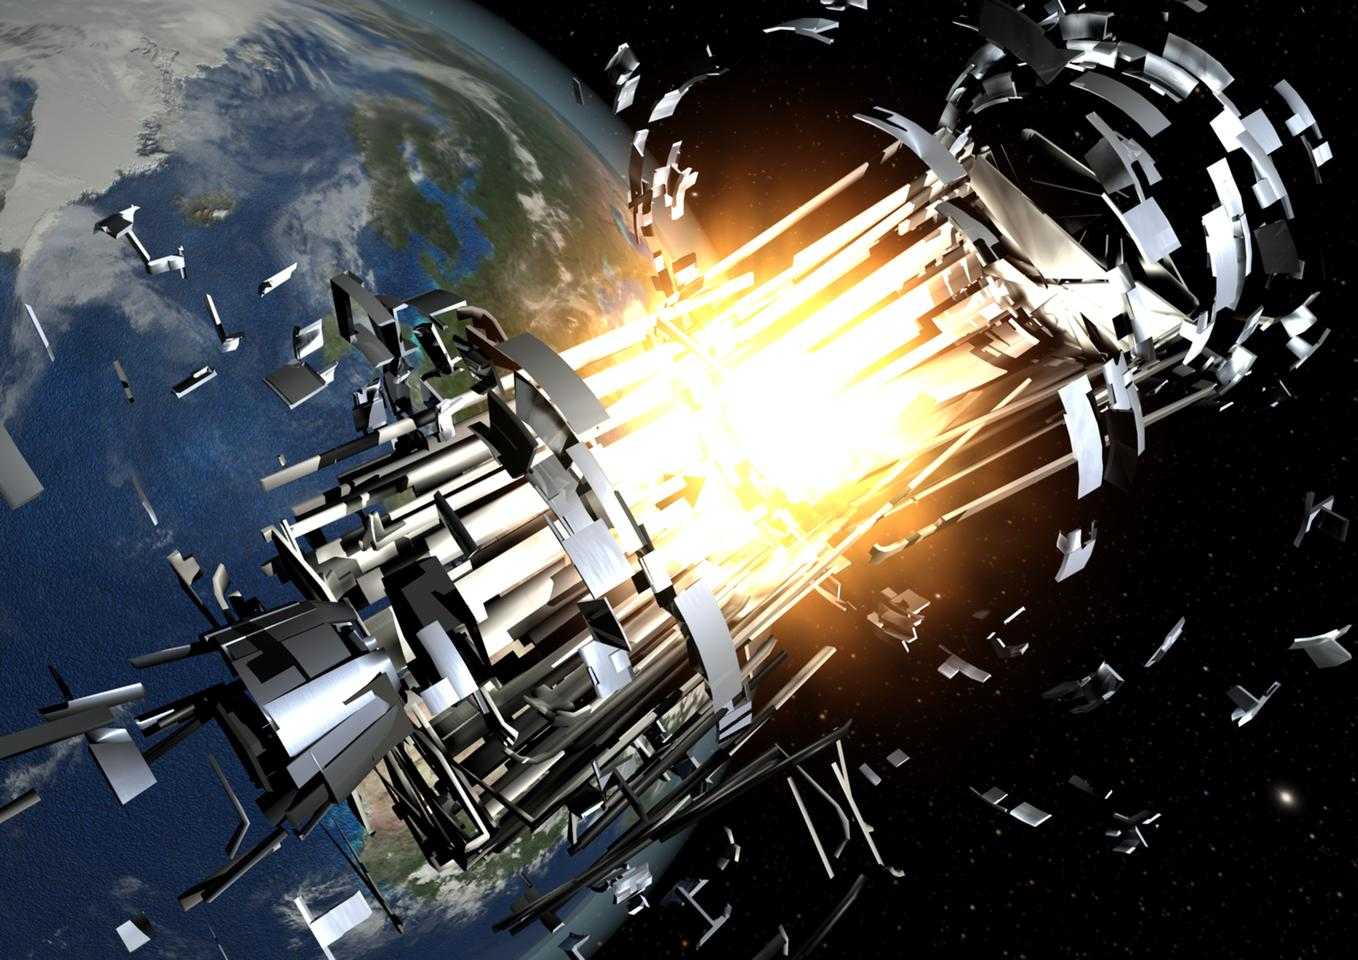 Representation of a satellite being destroyed by collision with orbital debris (Image: ESA)